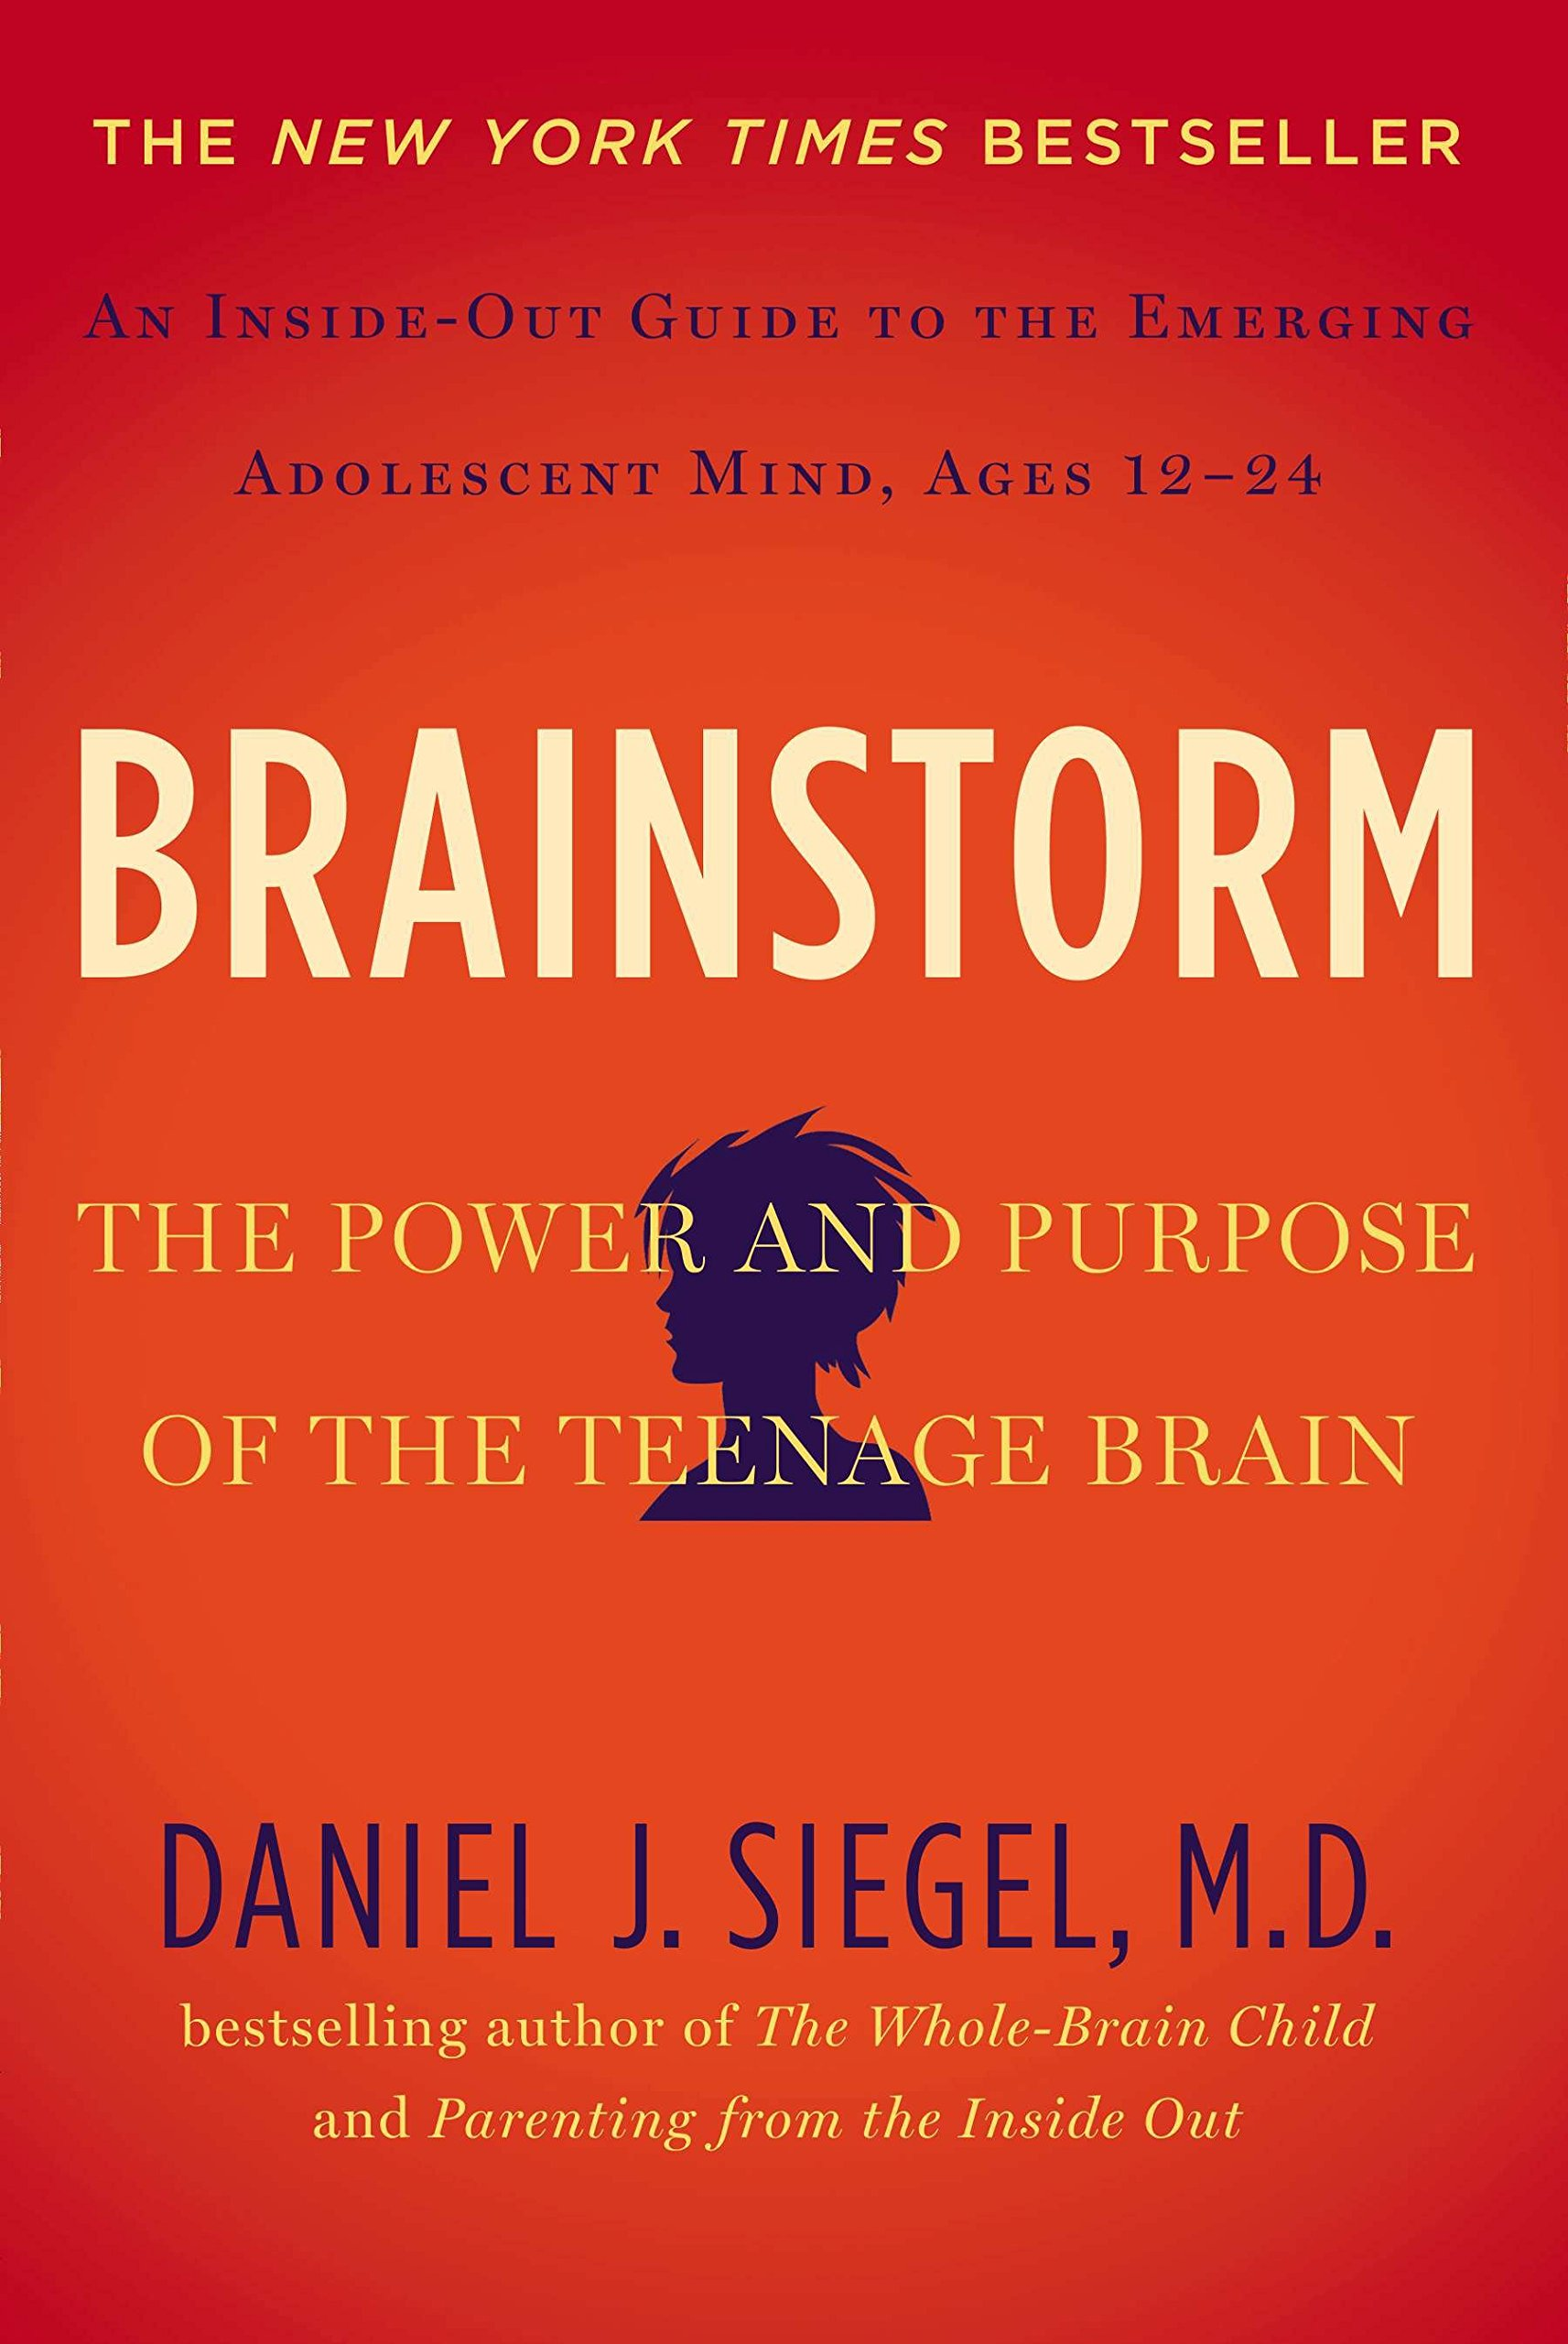 Image result for brainstorm siegel